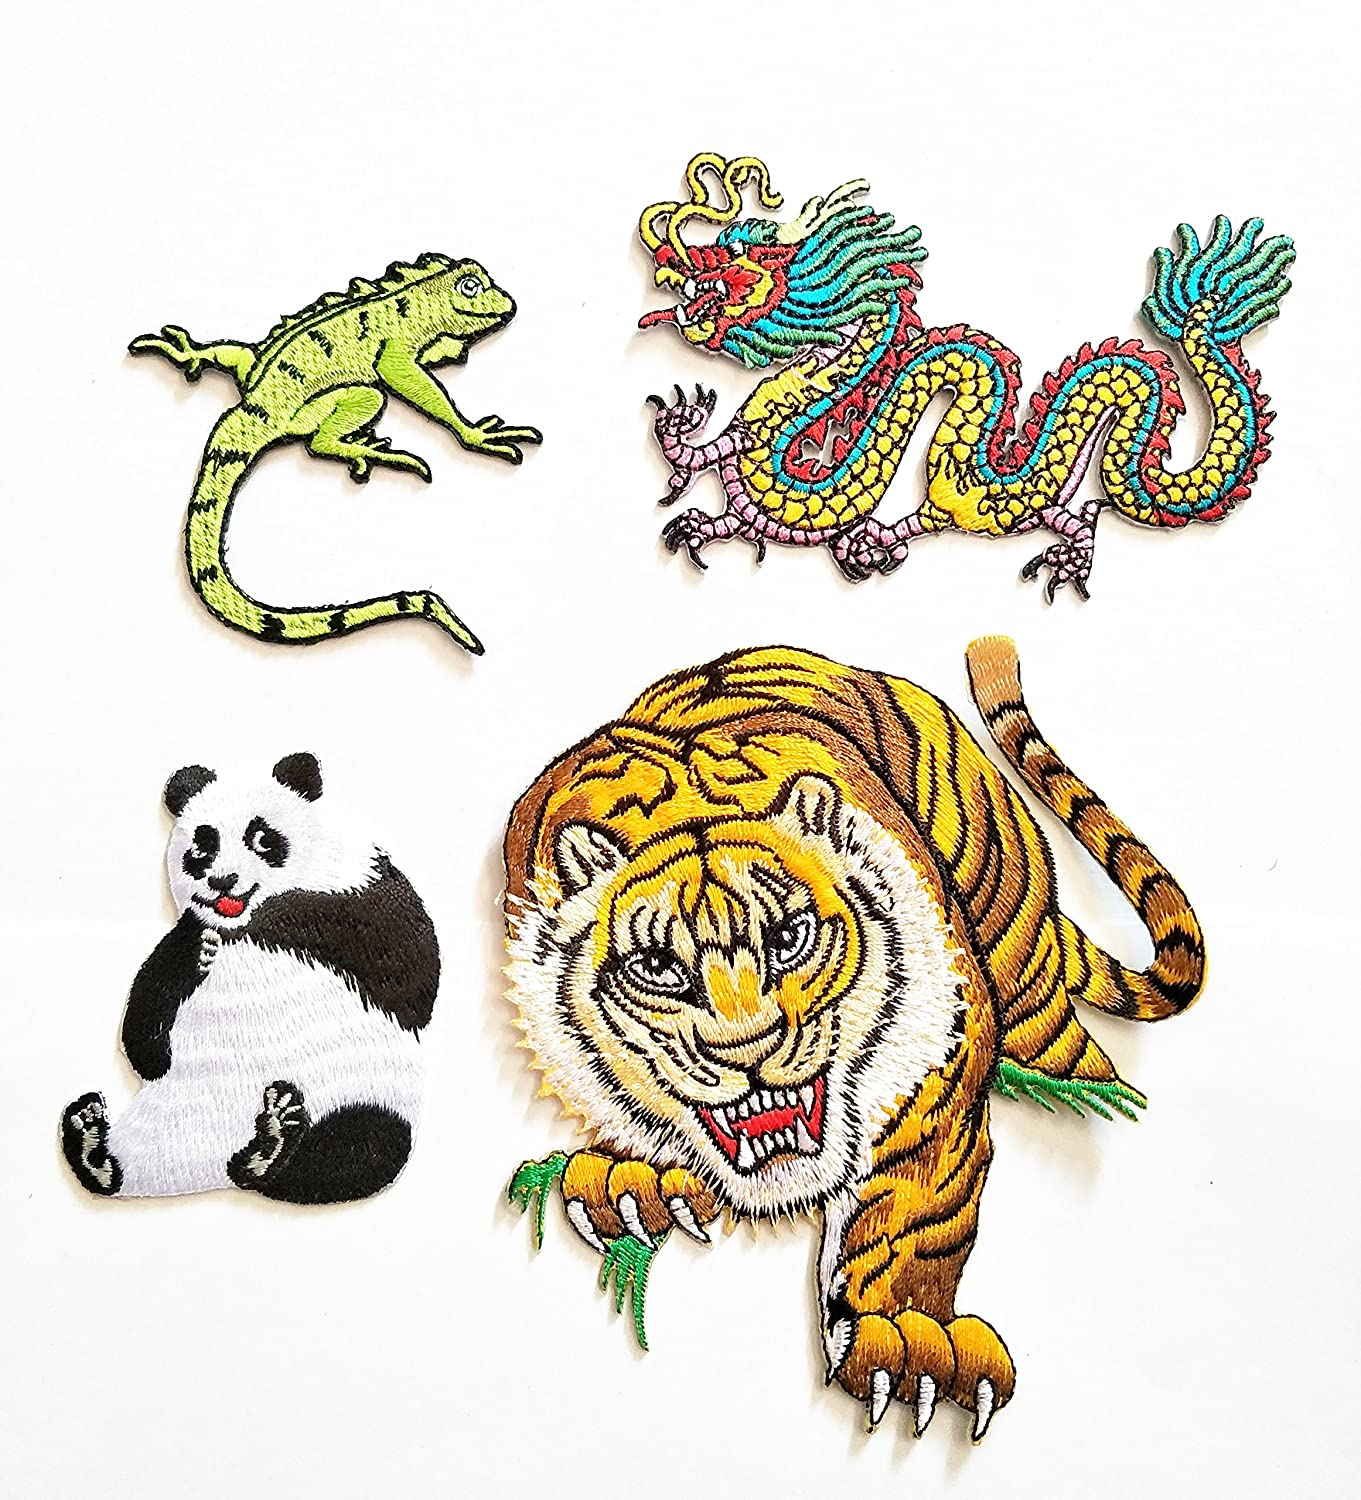 HHO 4 Piece Cute Animal Cartoon Patch chameleon dragon Panda Tiger Patch Kid Baby Boy Jacket T- Shirt Patch Sew Iron on Embroidered Symbol Badge Cloth Sign Costume